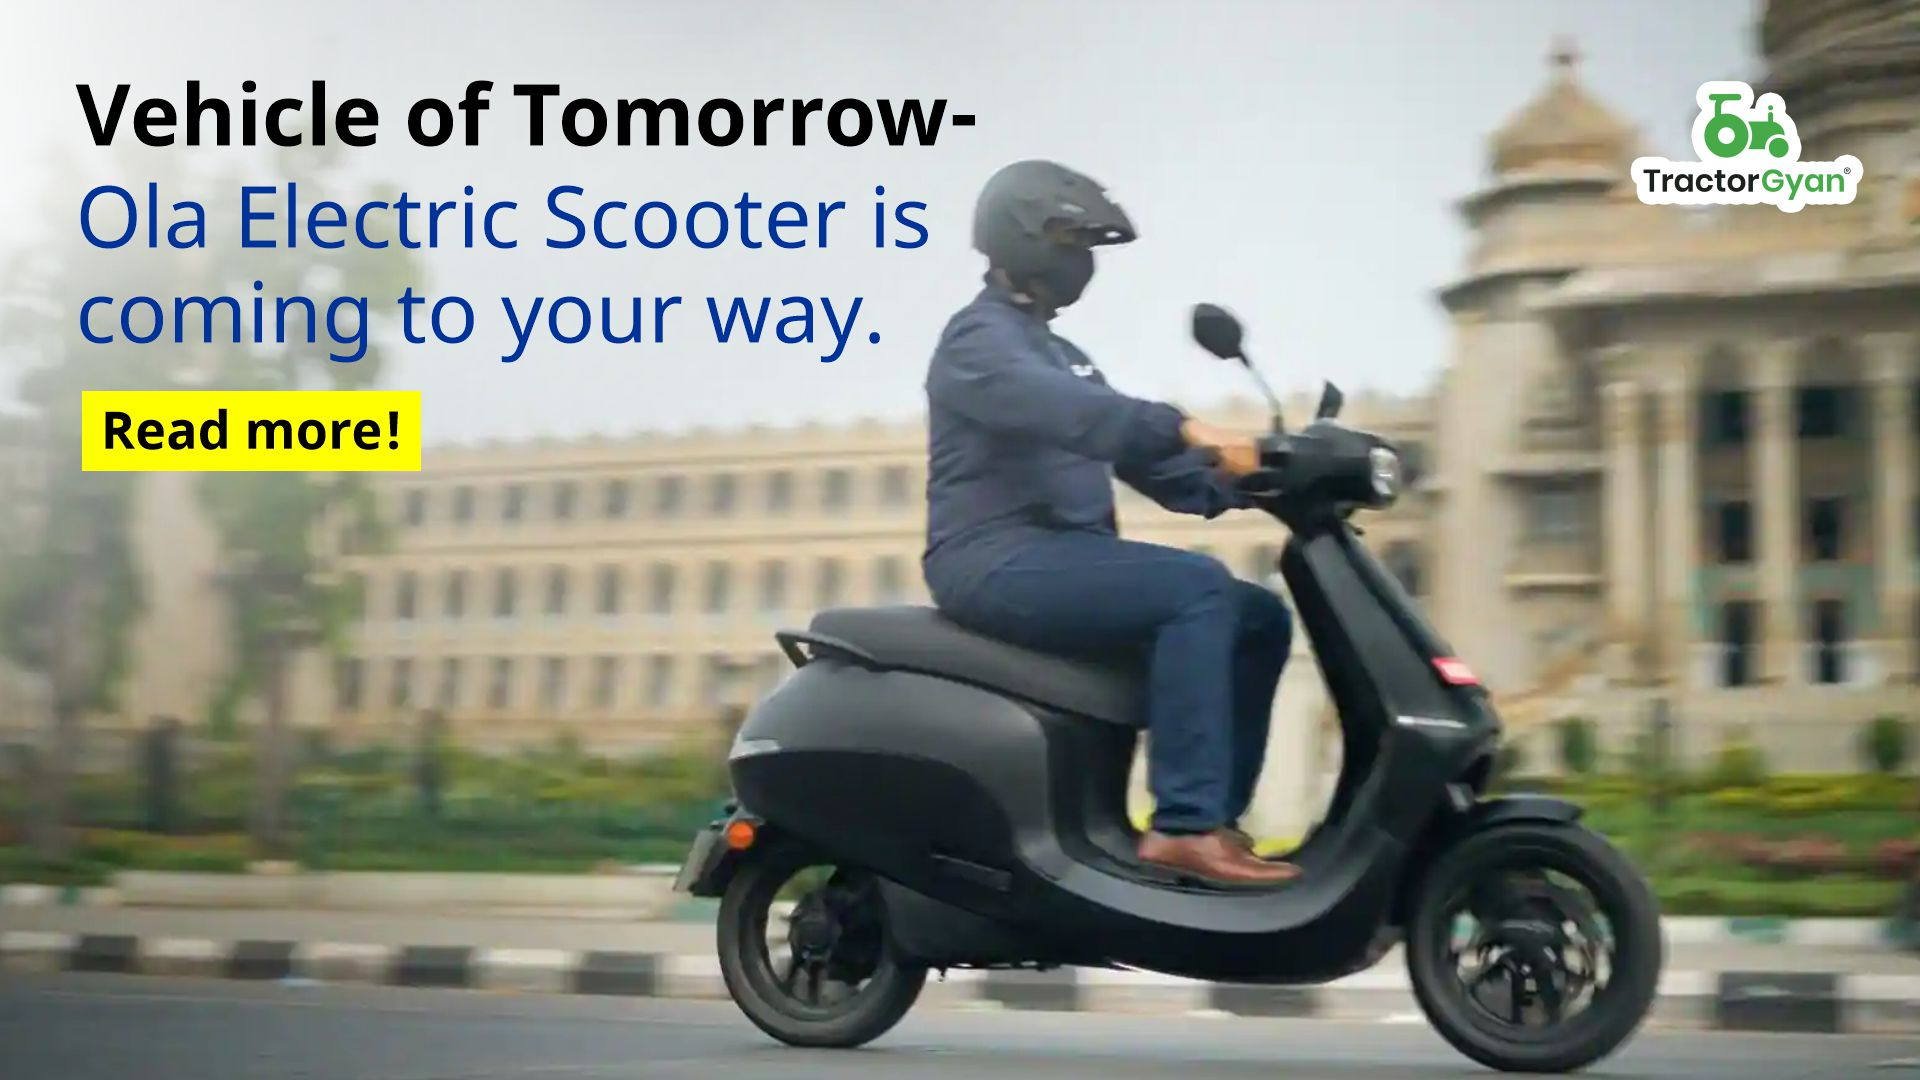 Vehicle of Tomorrow- Ola Electrc Scooter is coming to your way.